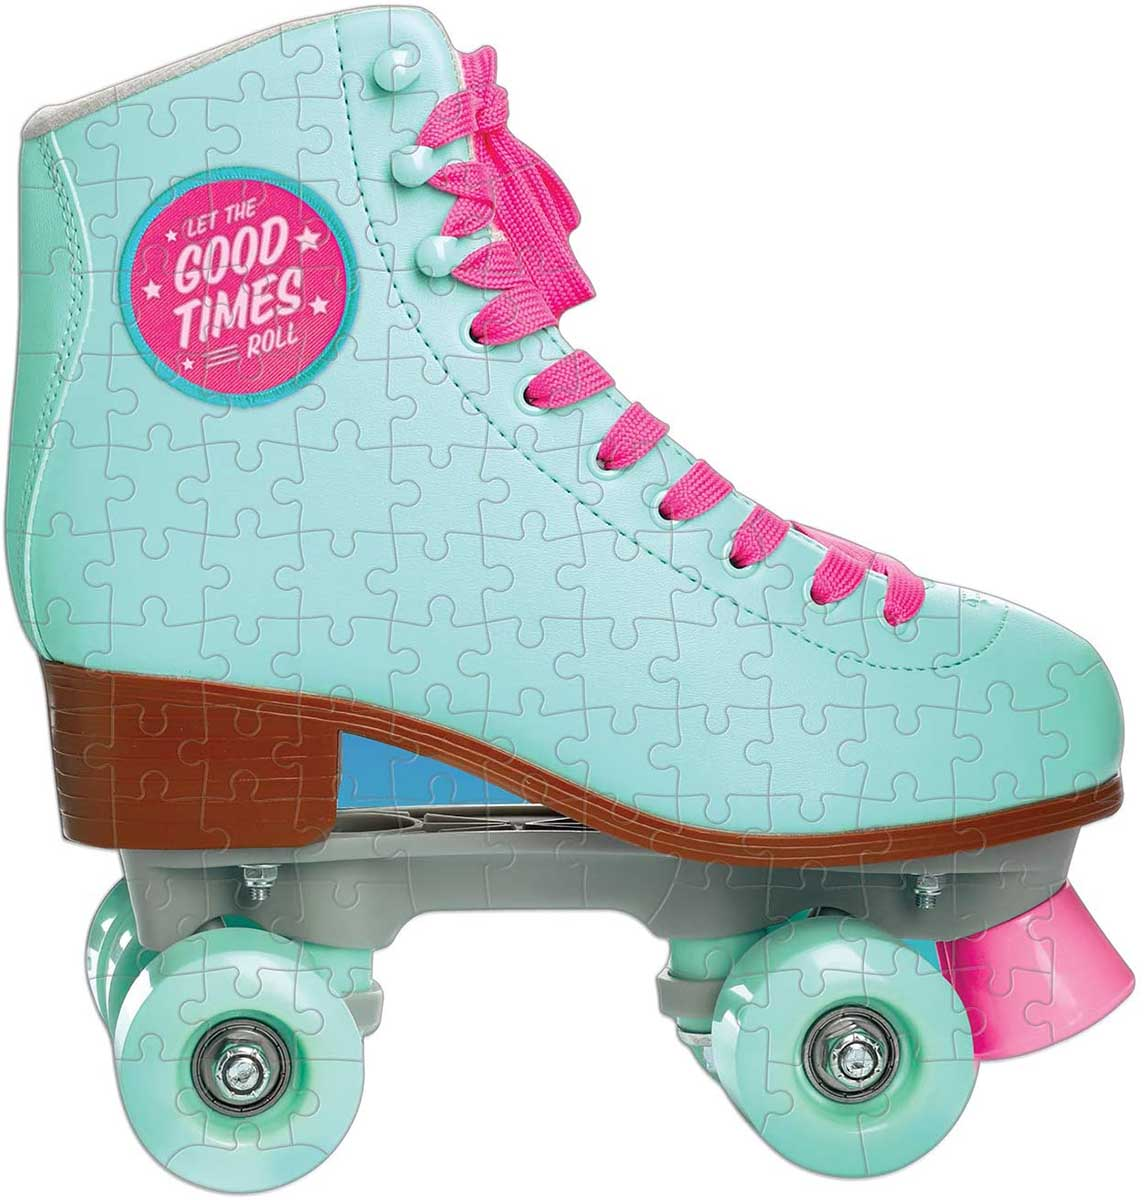 Let The Good Times Roll Roller Skate Everyday Objects Shaped Puzzle